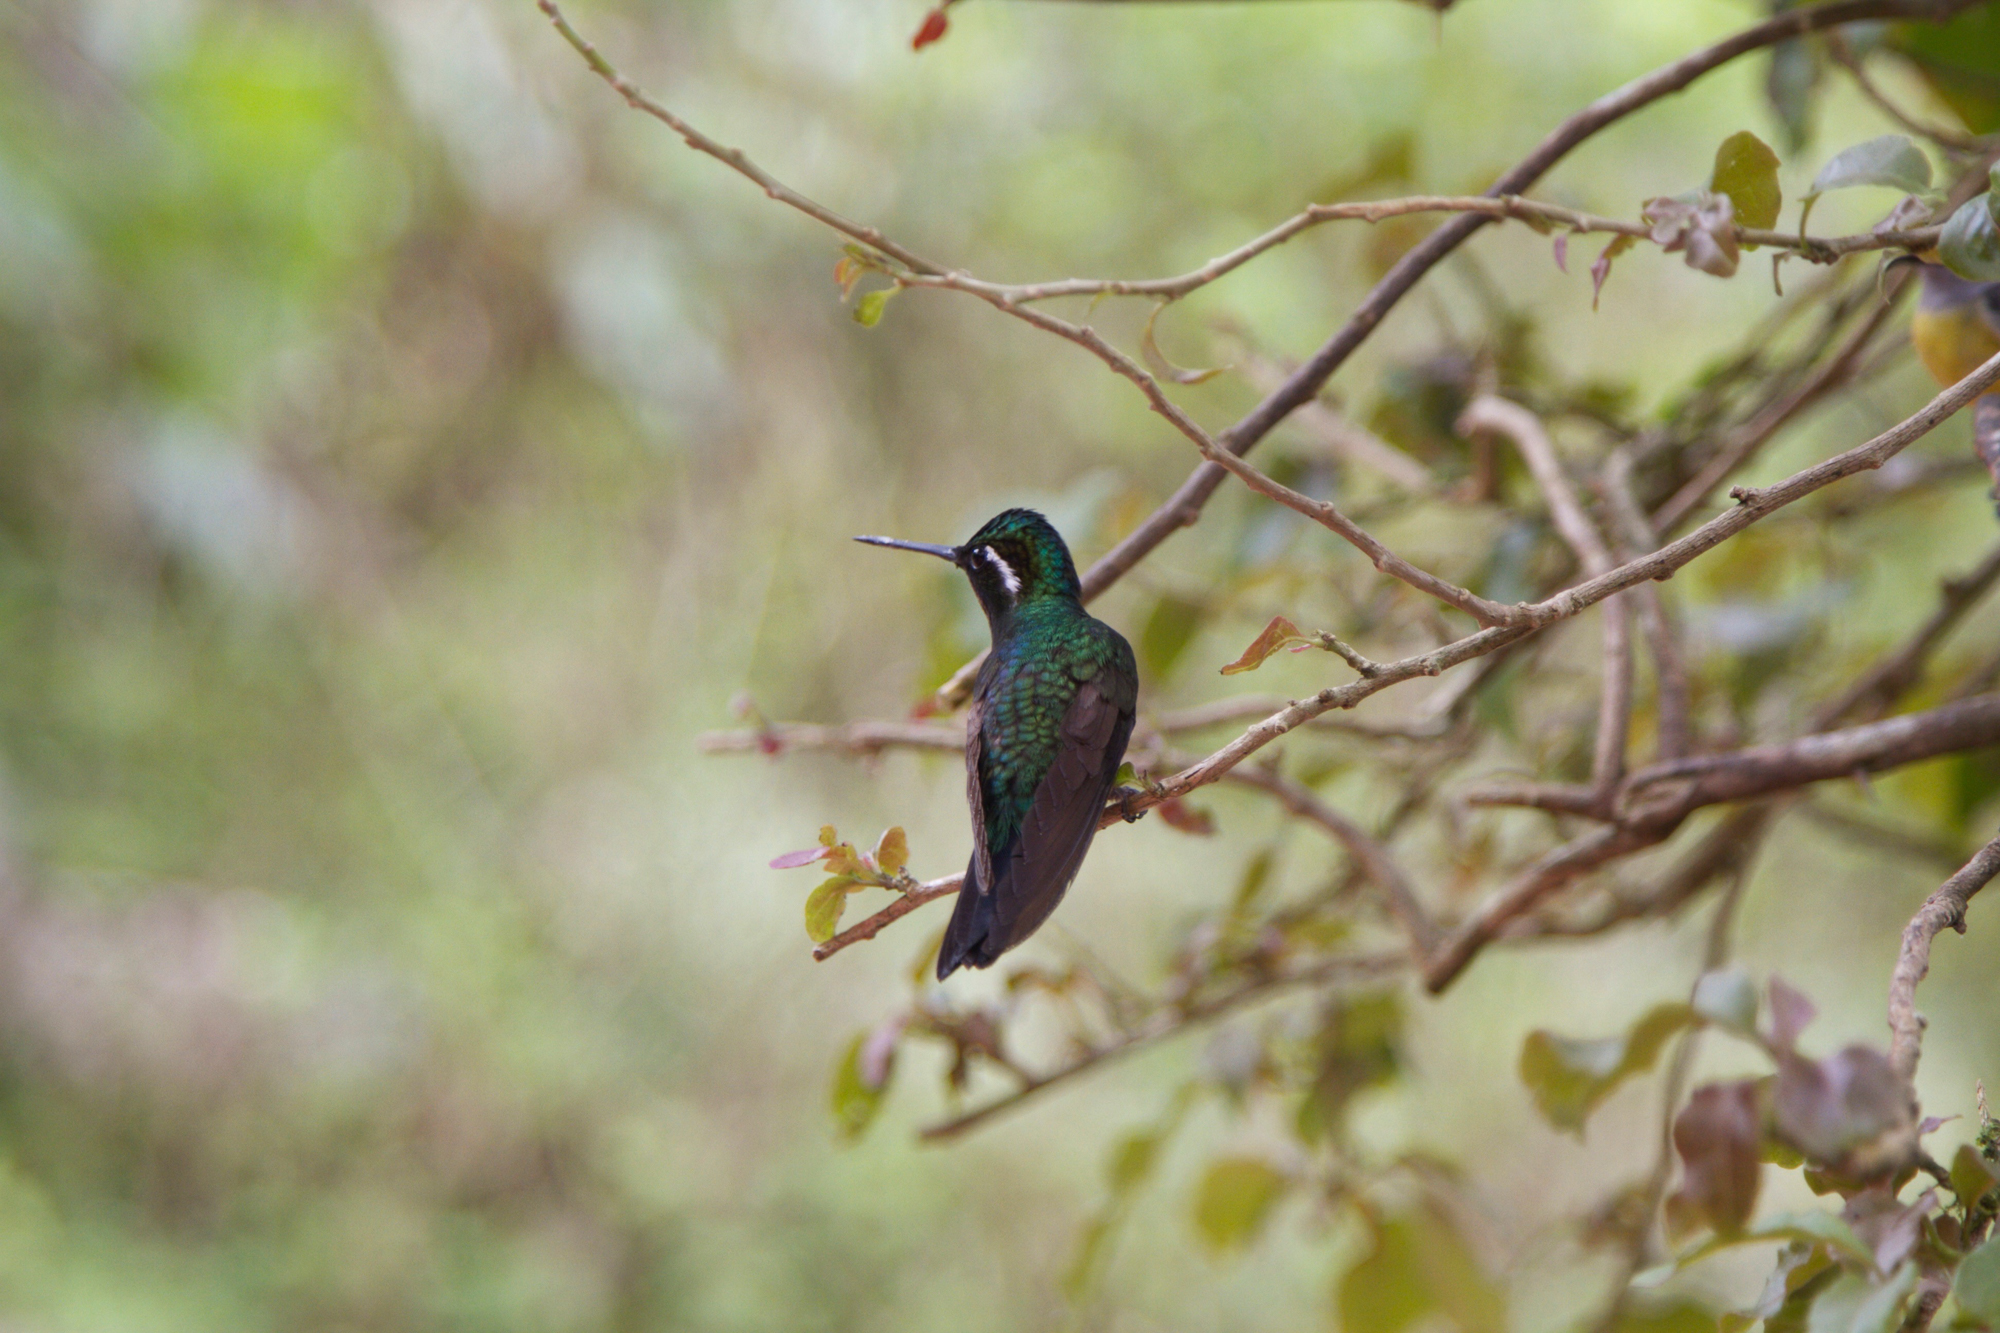 Photo by: Holli Margell of  Native Light Photography  - Hummingbird